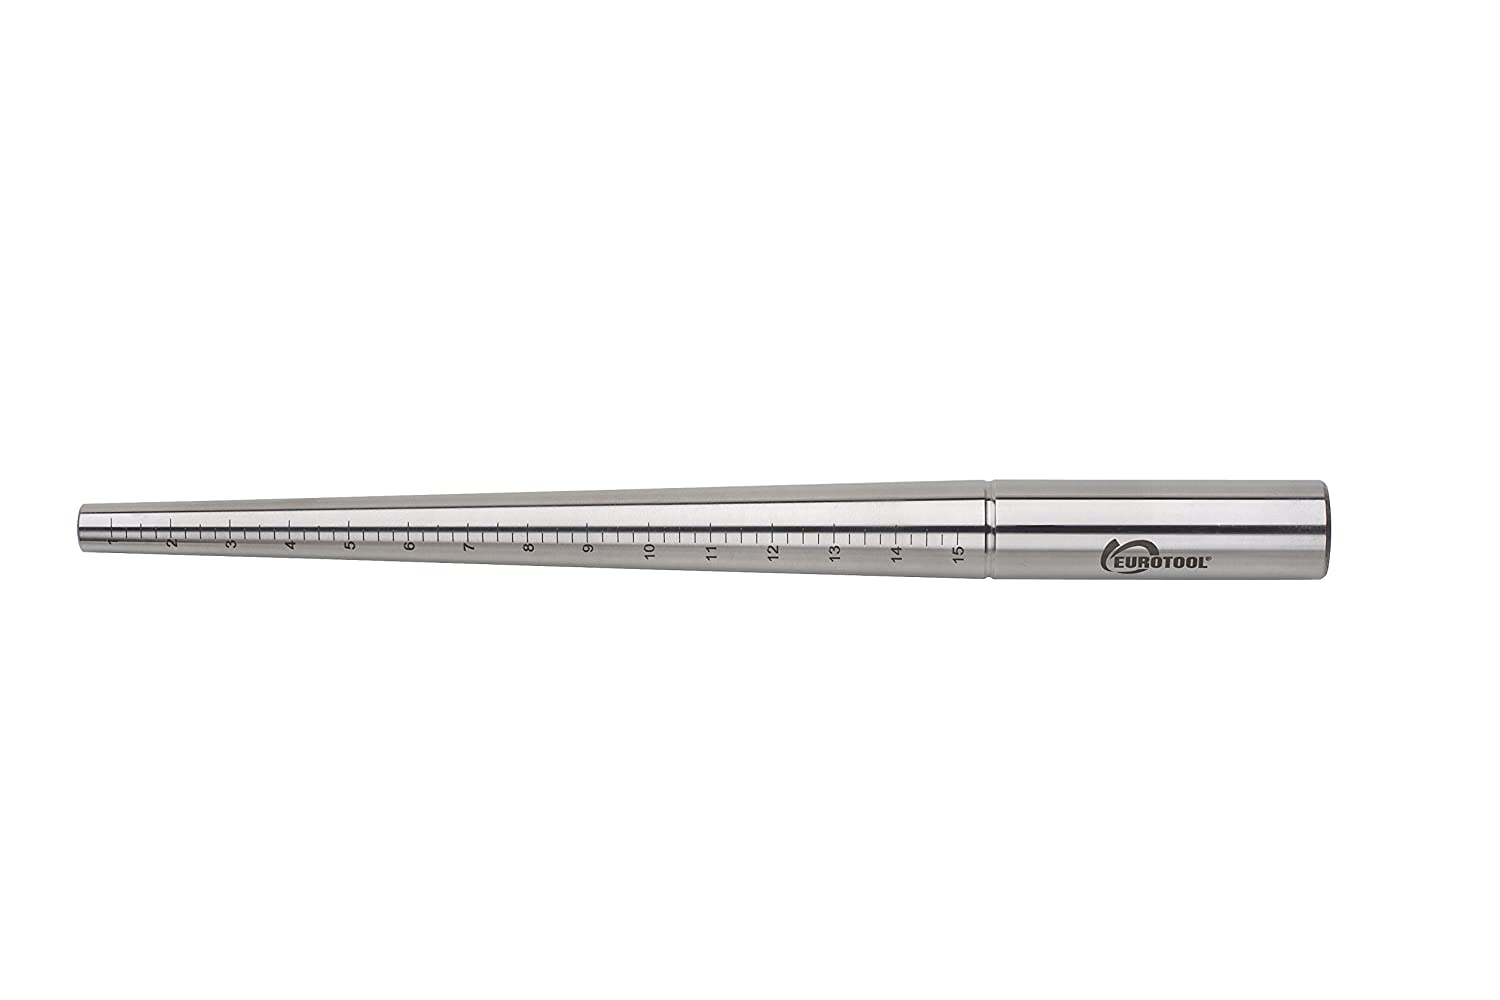 Steel Ring Mandrel, Round, 11-1/2 Inches | MAN-255.00 EURO TOOL